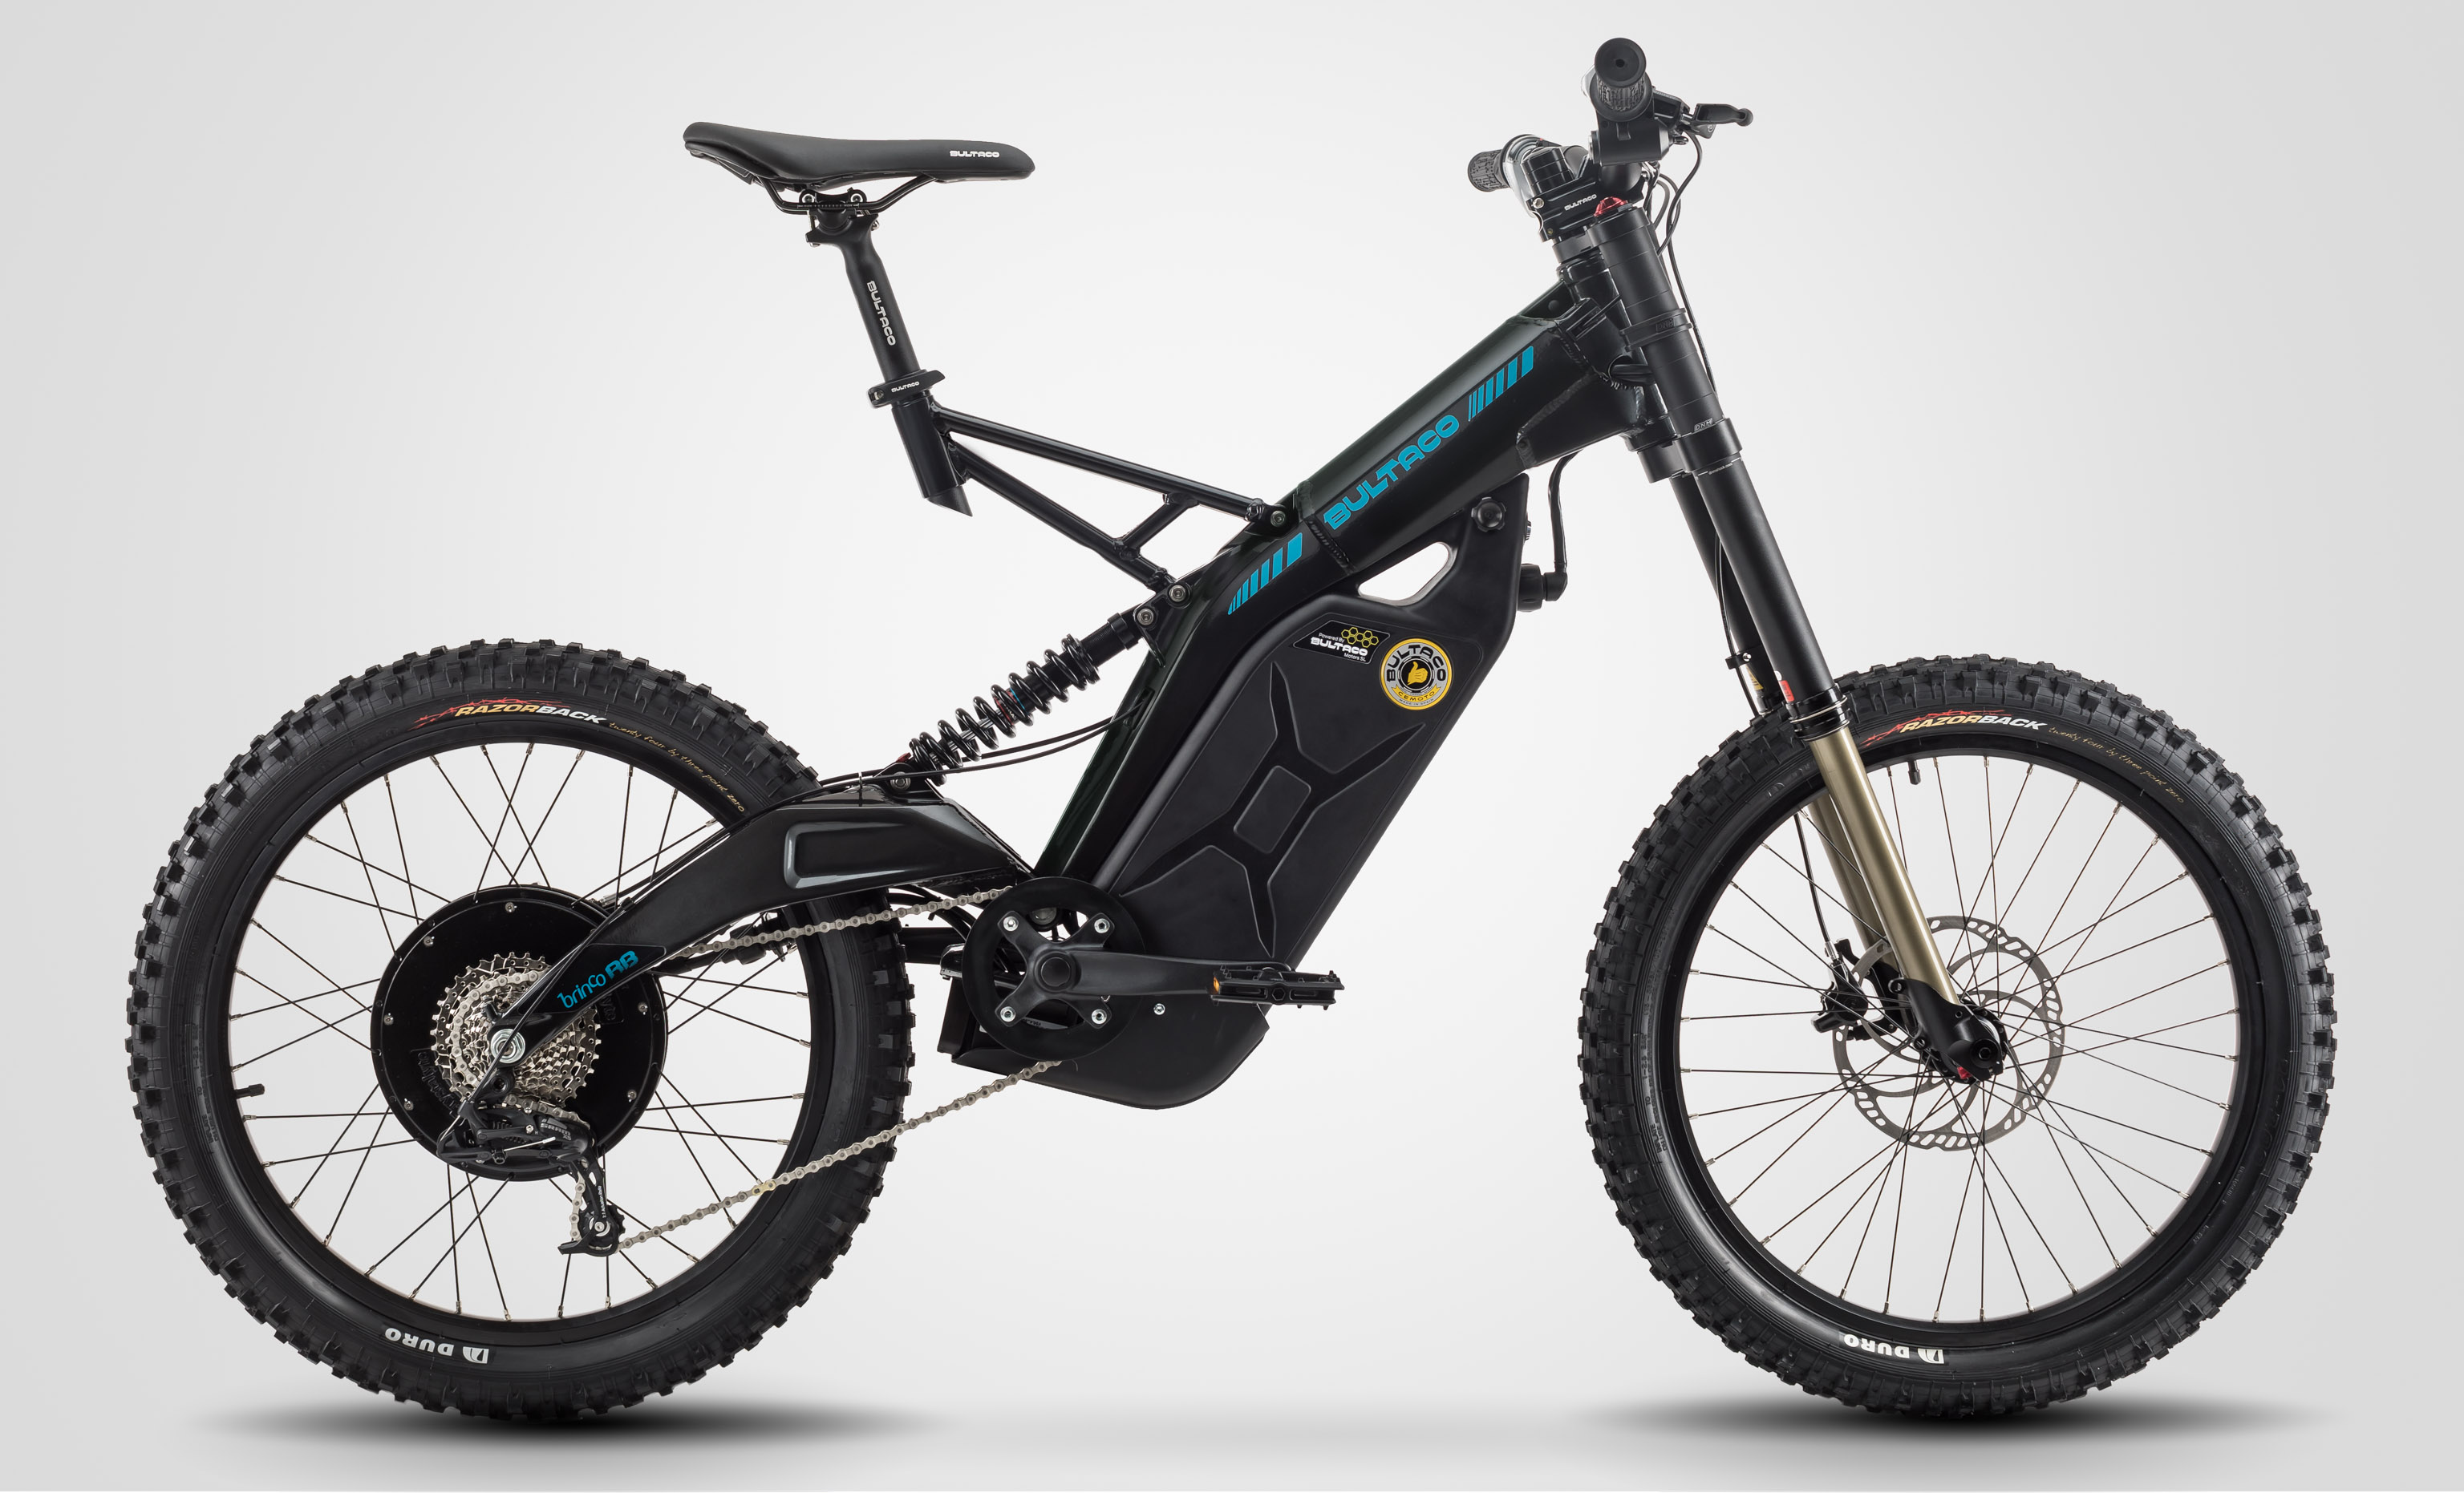 Bultaco is back with a stripped down eMTB the Brinco RB | EvNerds